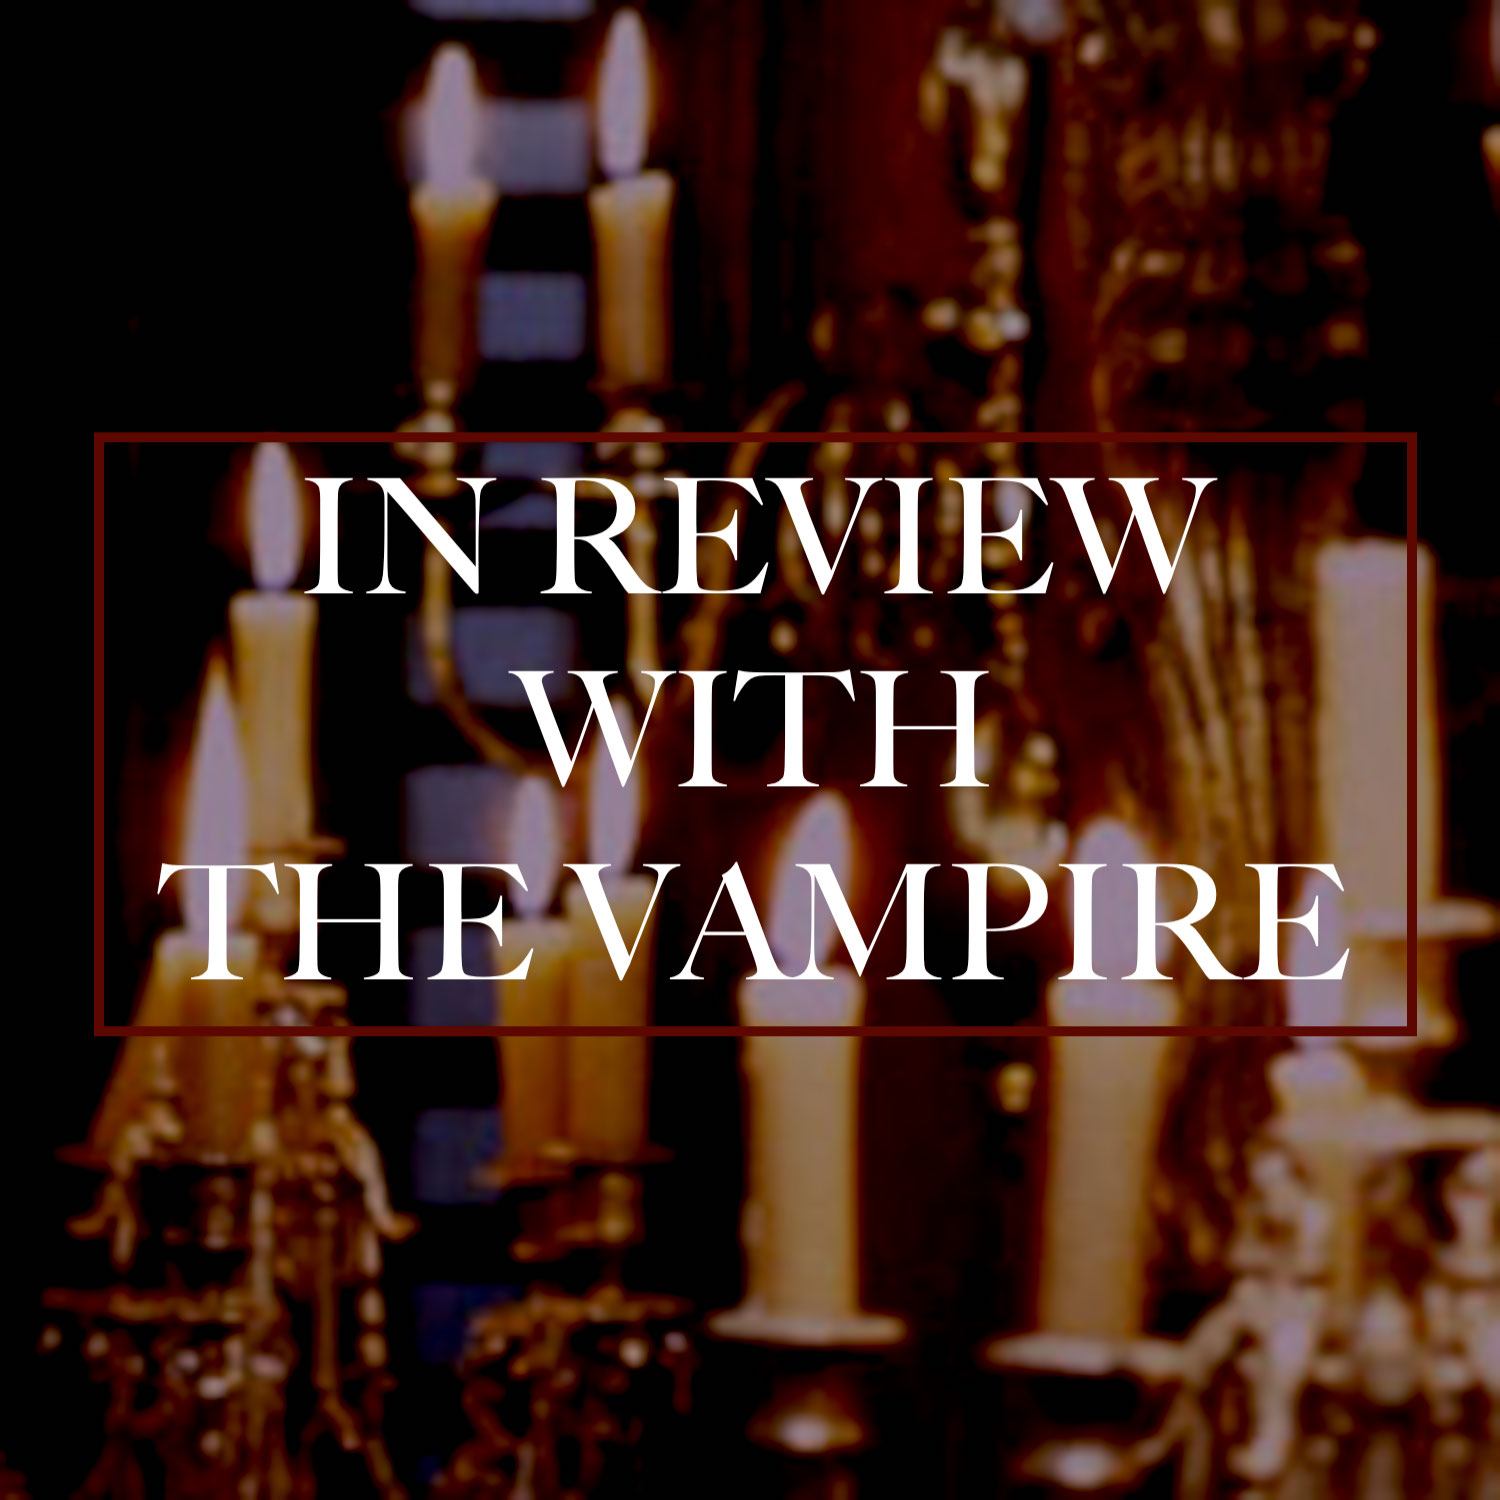 in review with the vampire.jpg